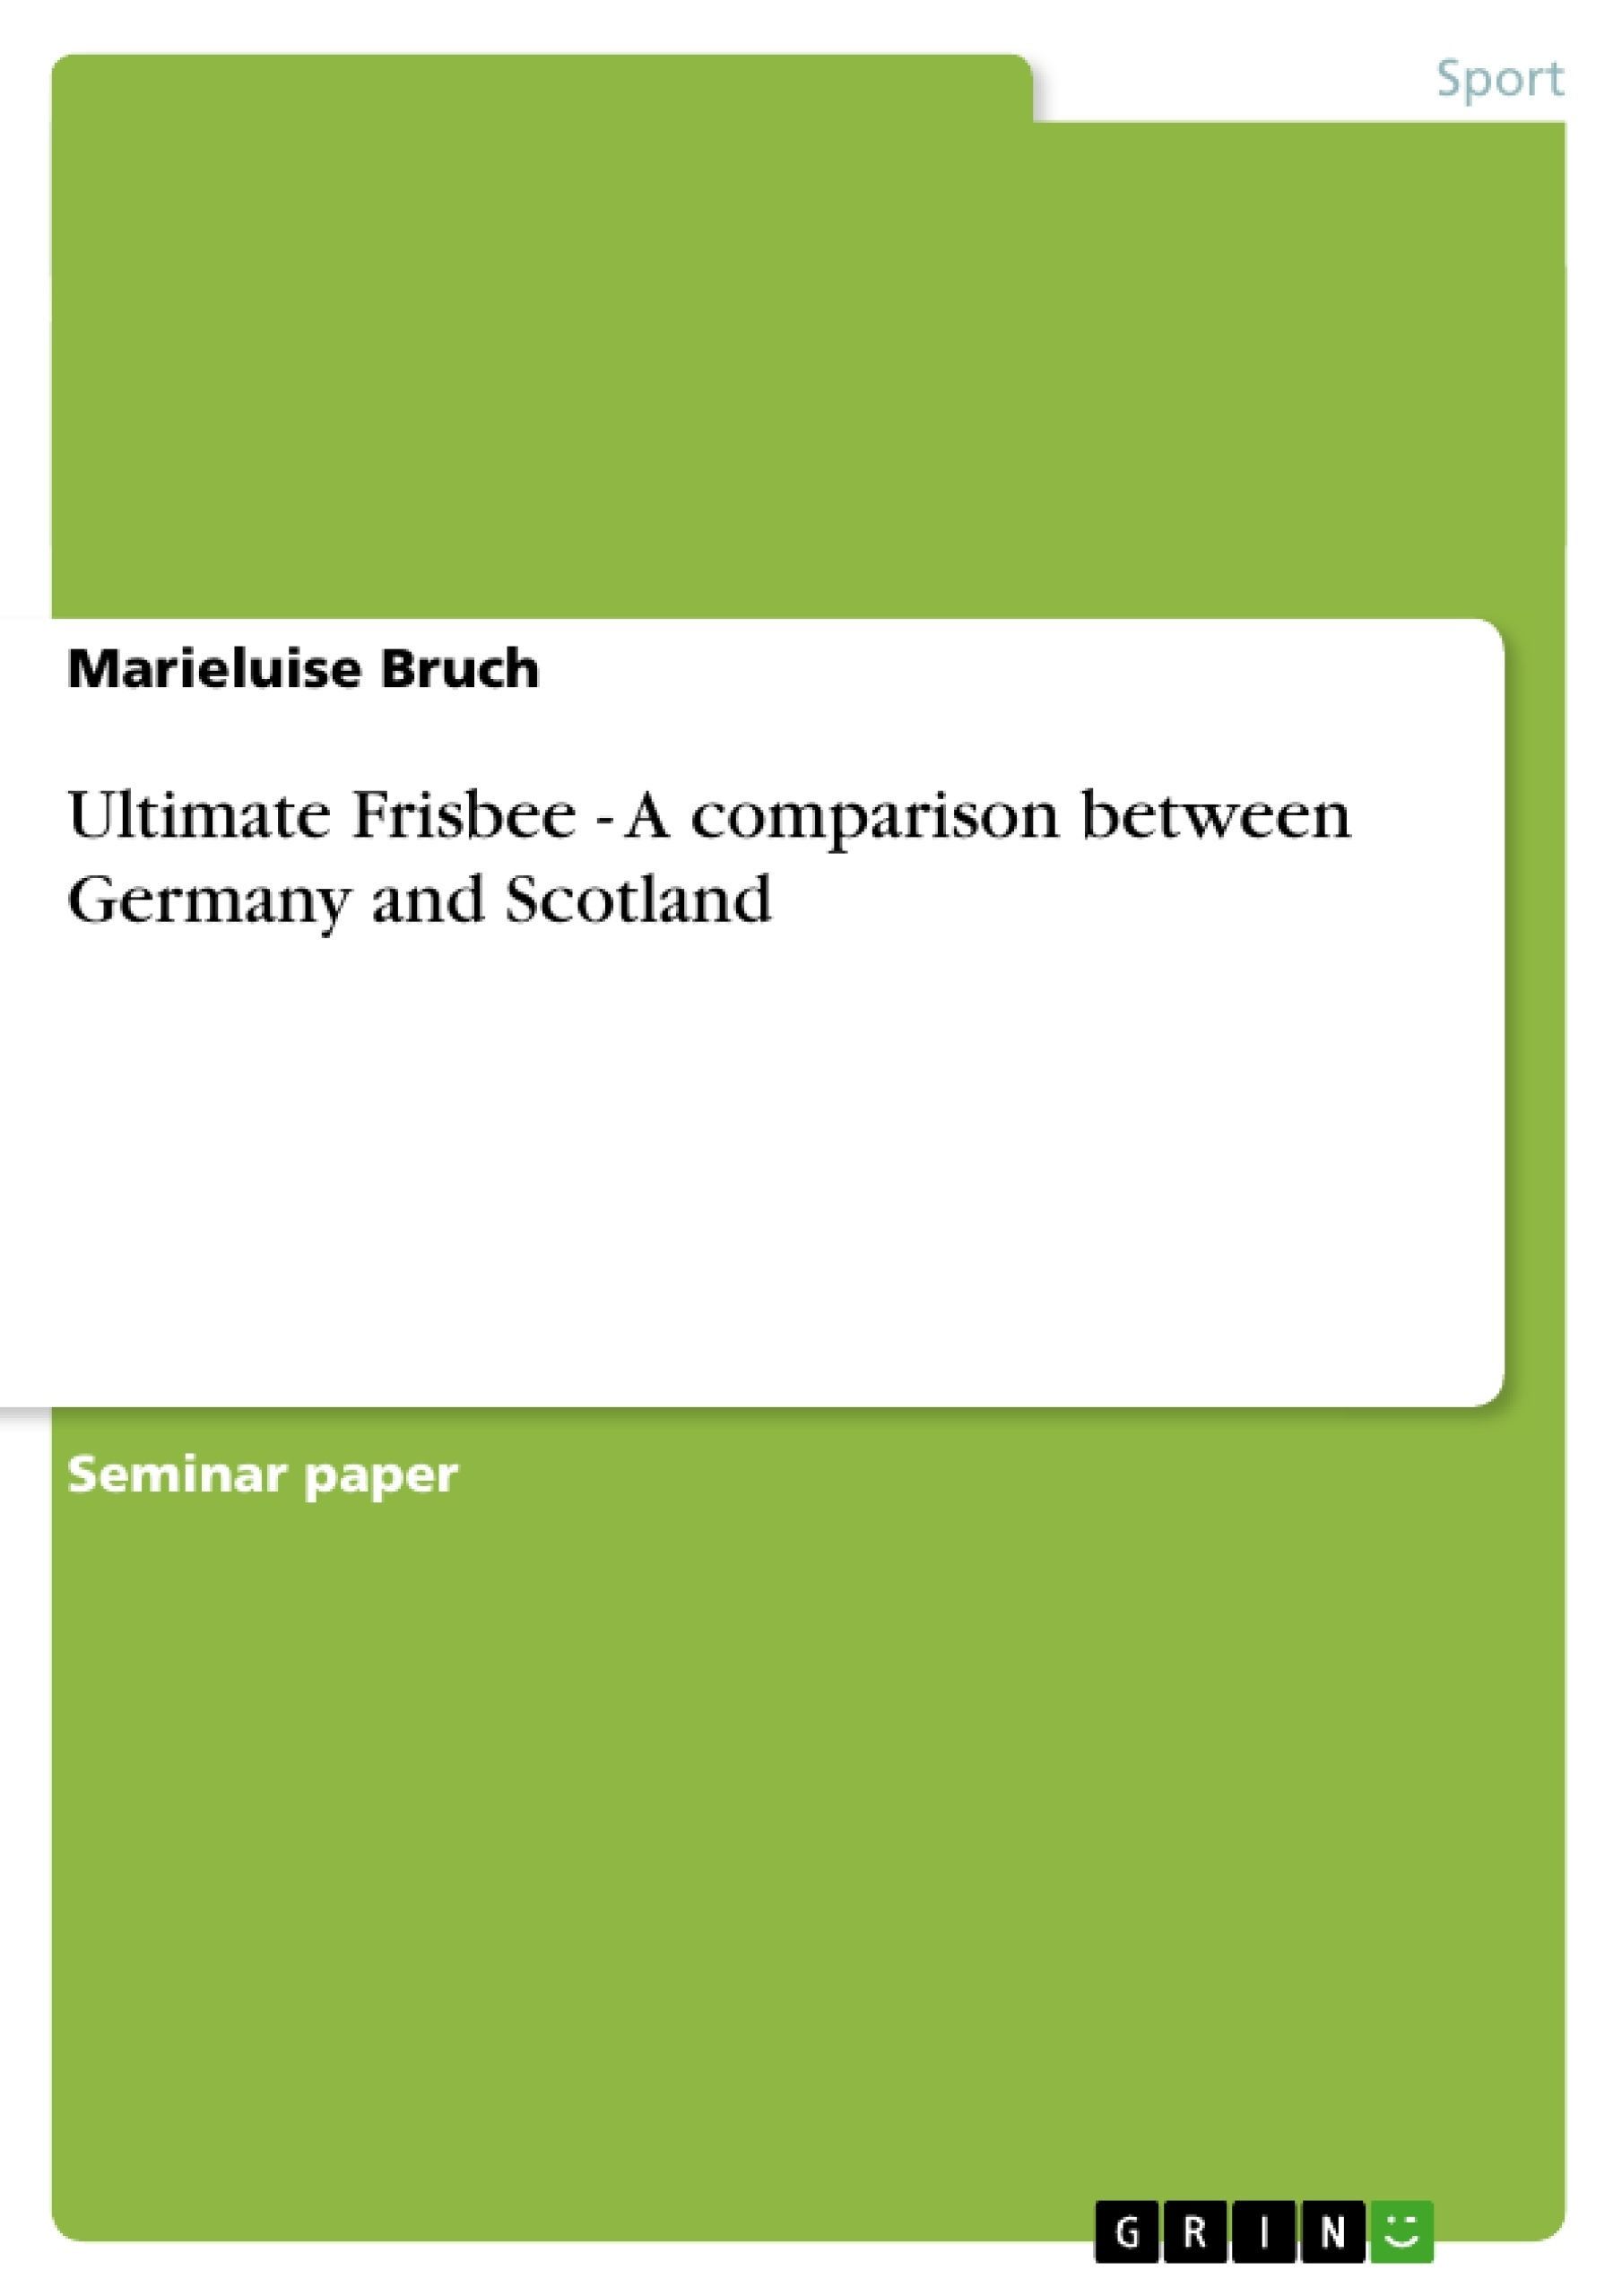 Title: Ultimate Frisbee - A comparison between Germany and Scotland